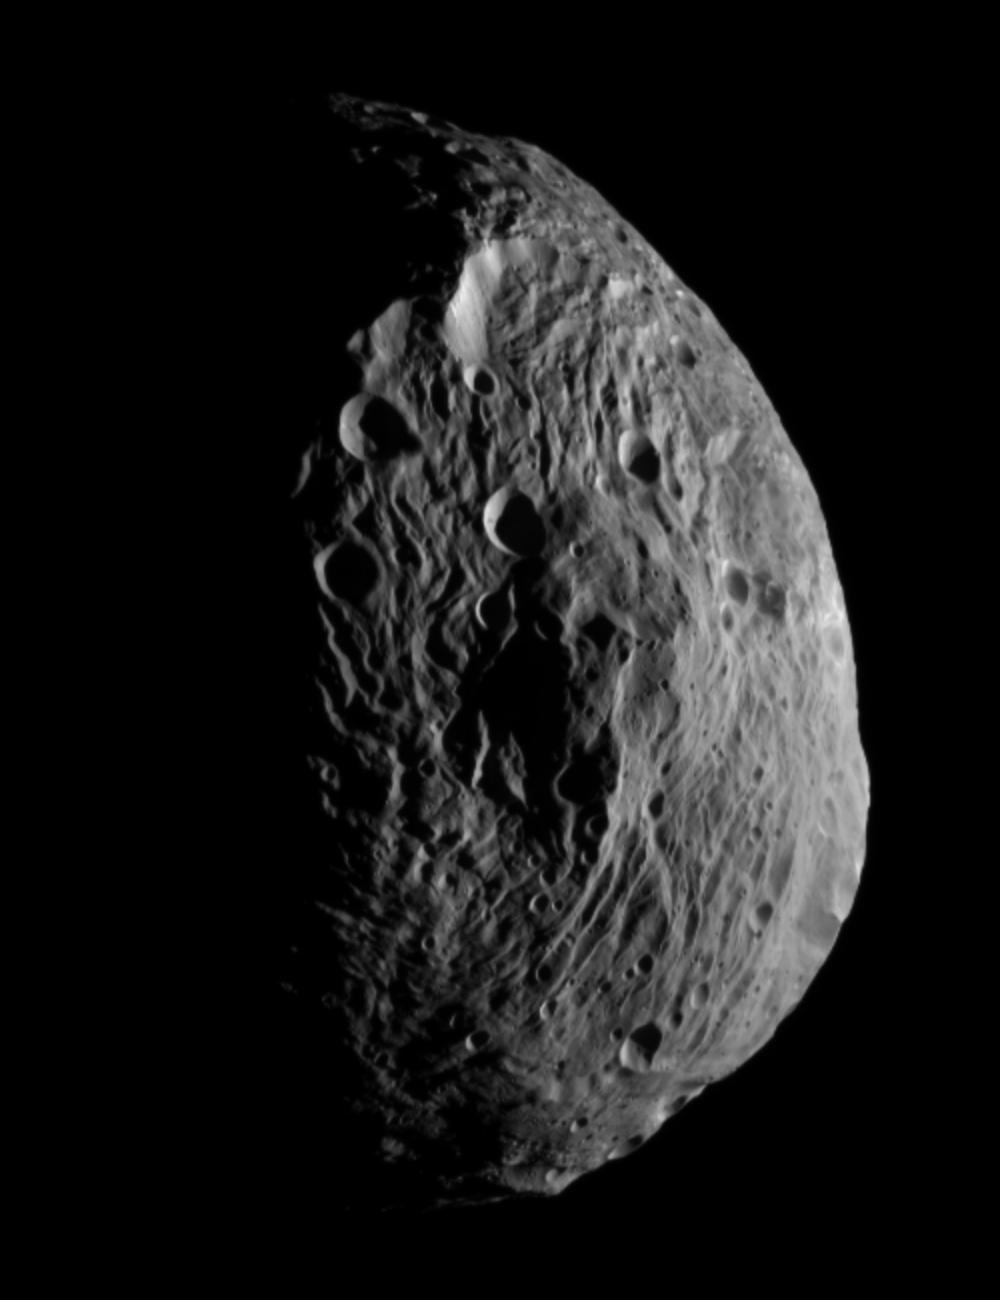 New Photo Reveals Day & Night on Huge Asteroid Vesta